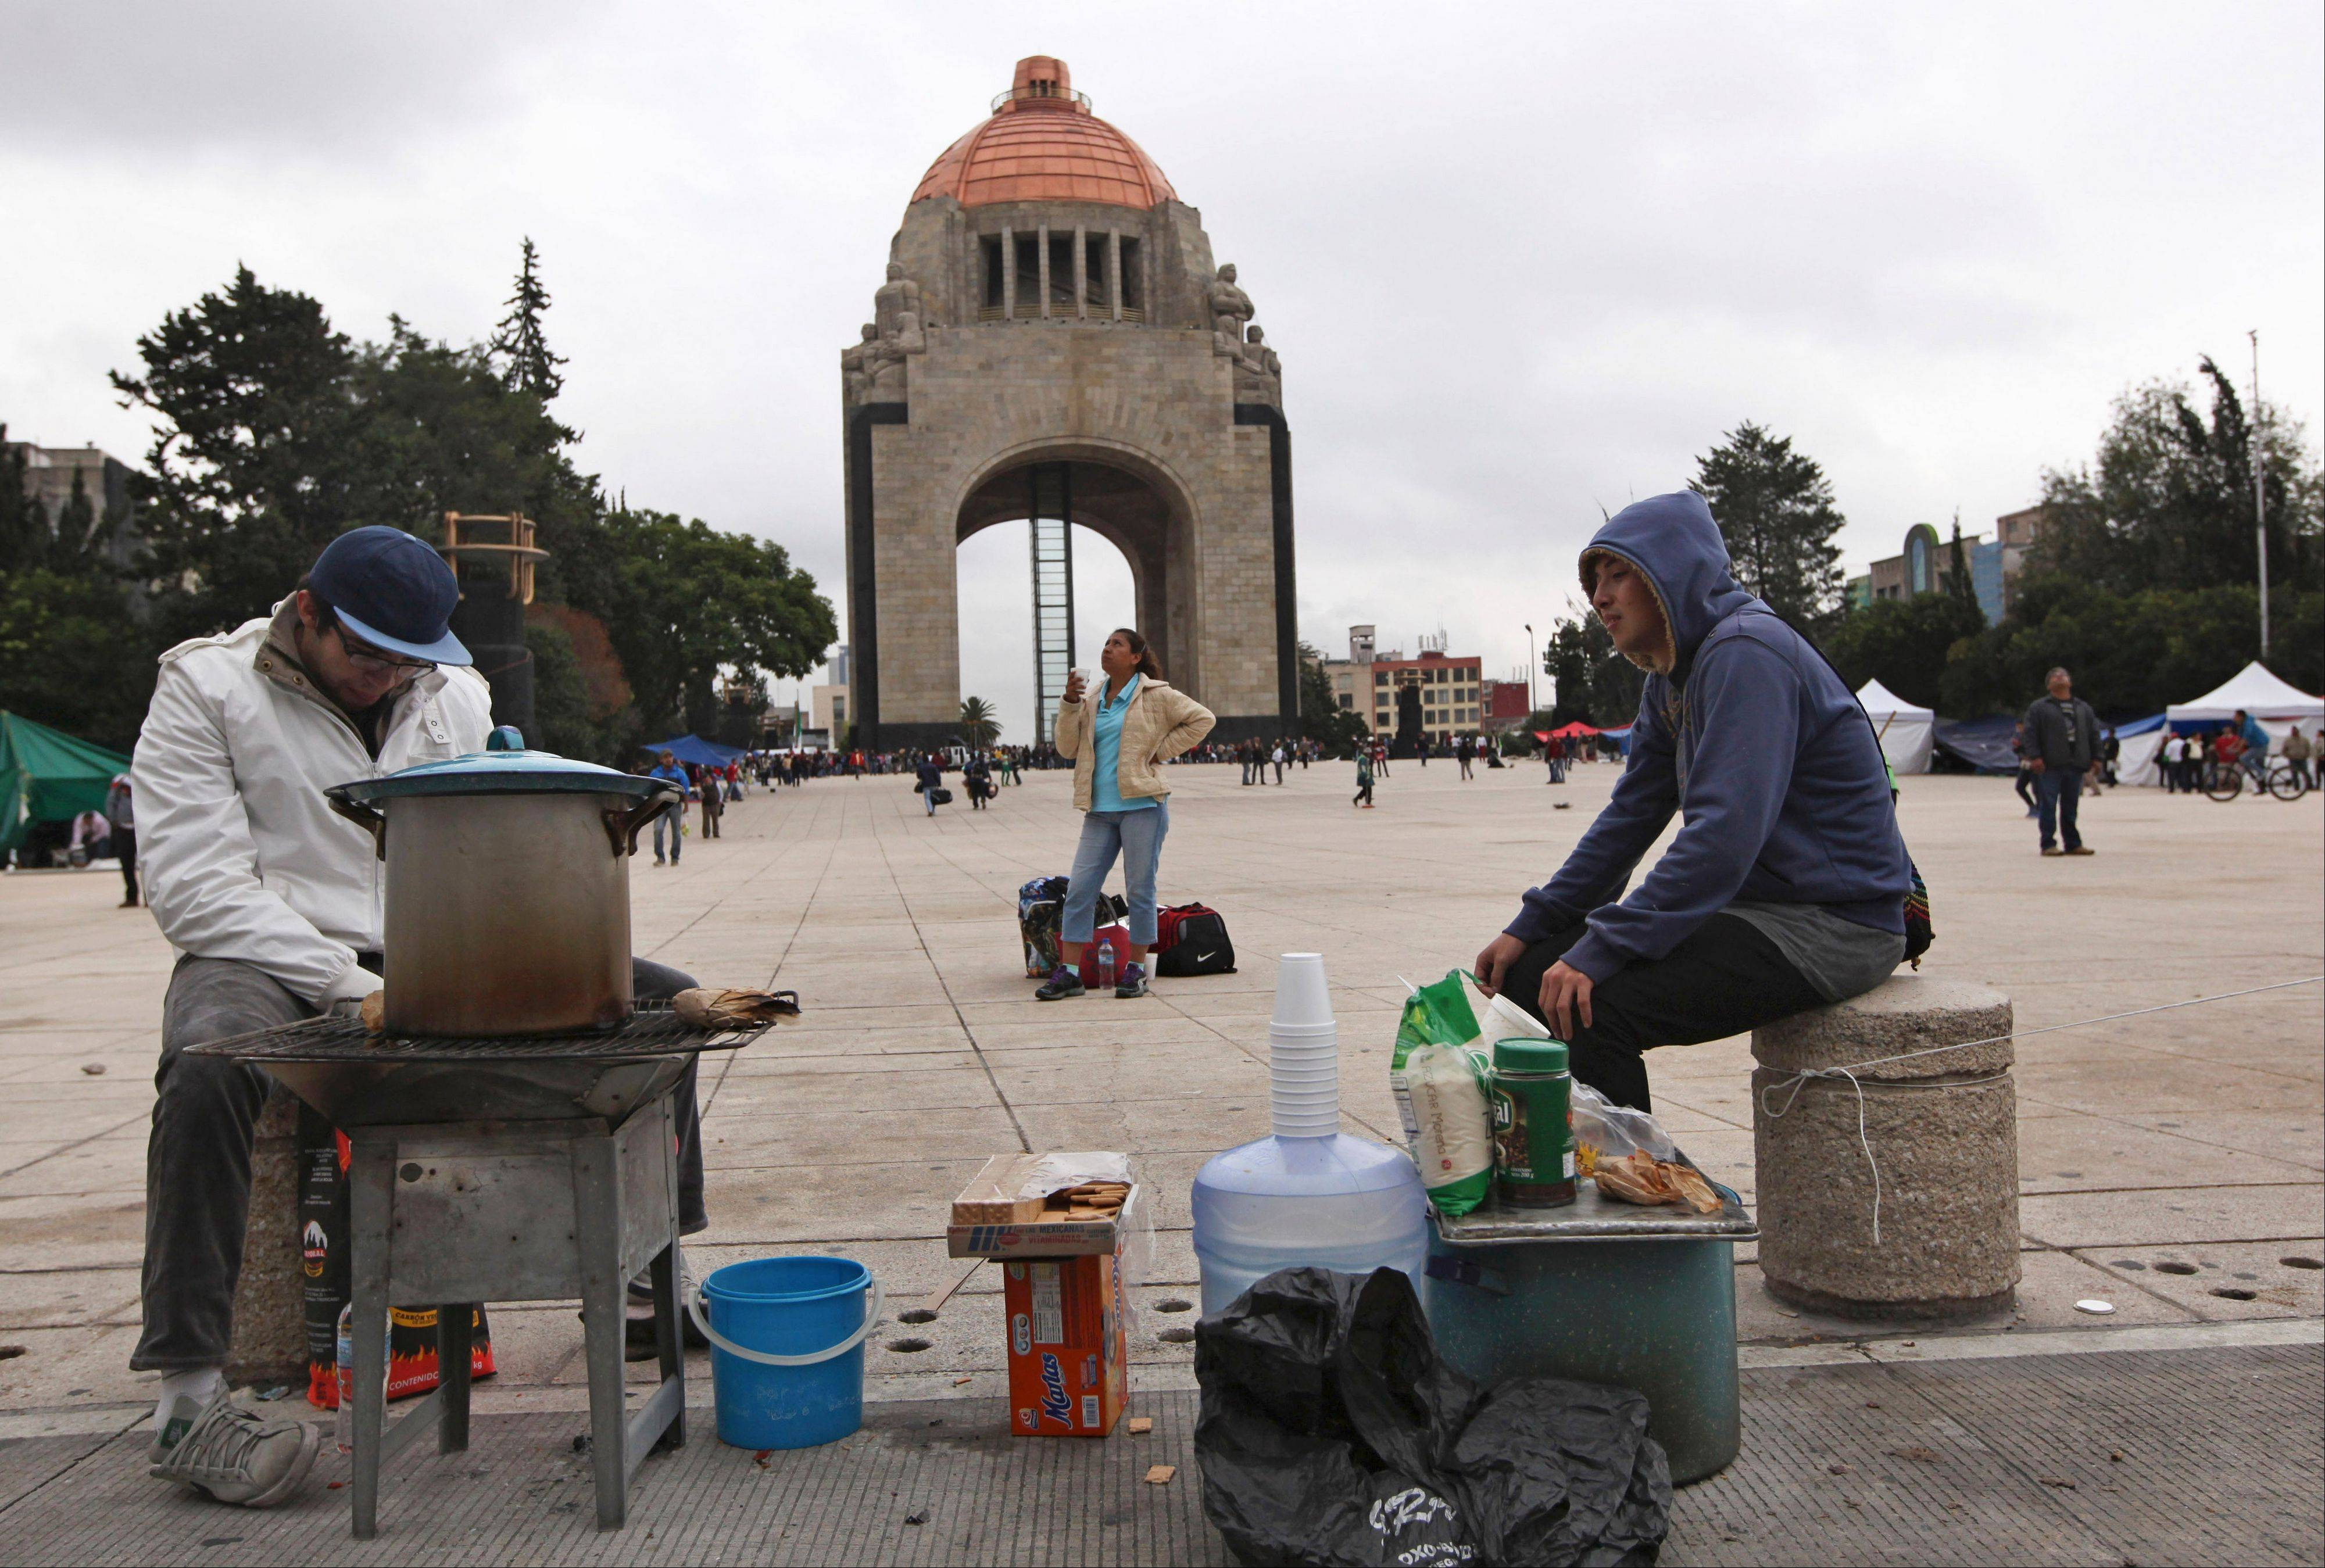 Striking teachers camp out at the Monument to the Revolution in Mexico City, early Saturday. Some teachers protesting President Enrique Pena Nieto�s education reforms reassembled at this monument after they were kicked out of the city�s main Zocalo plaza by riot police on Friday.